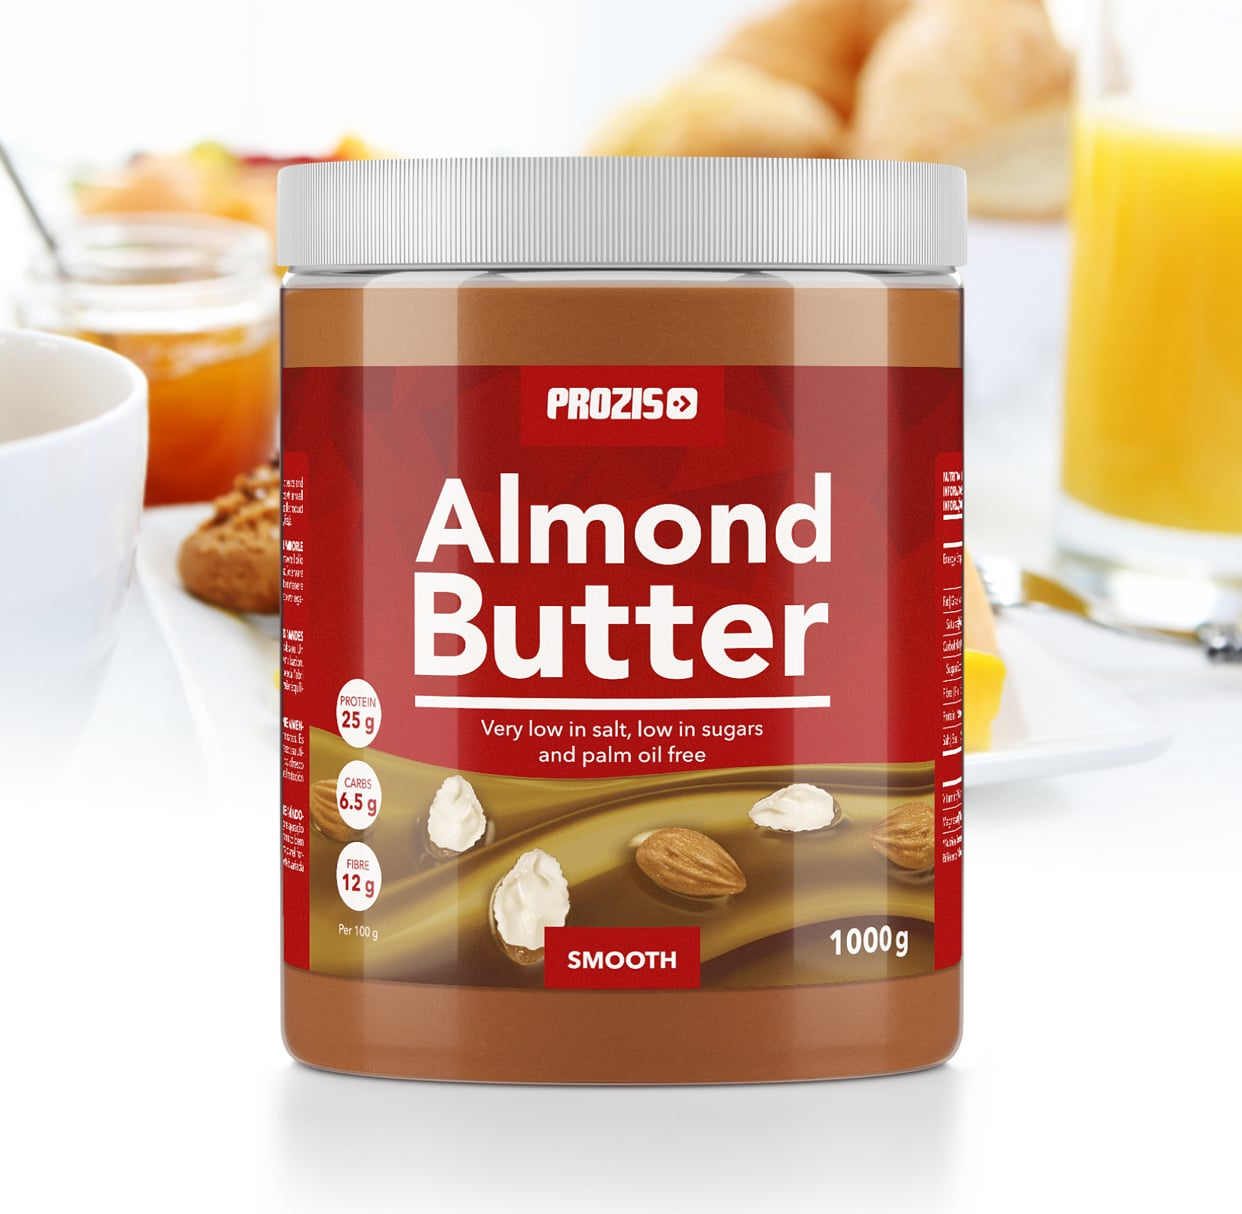 Prozis Almond Butter